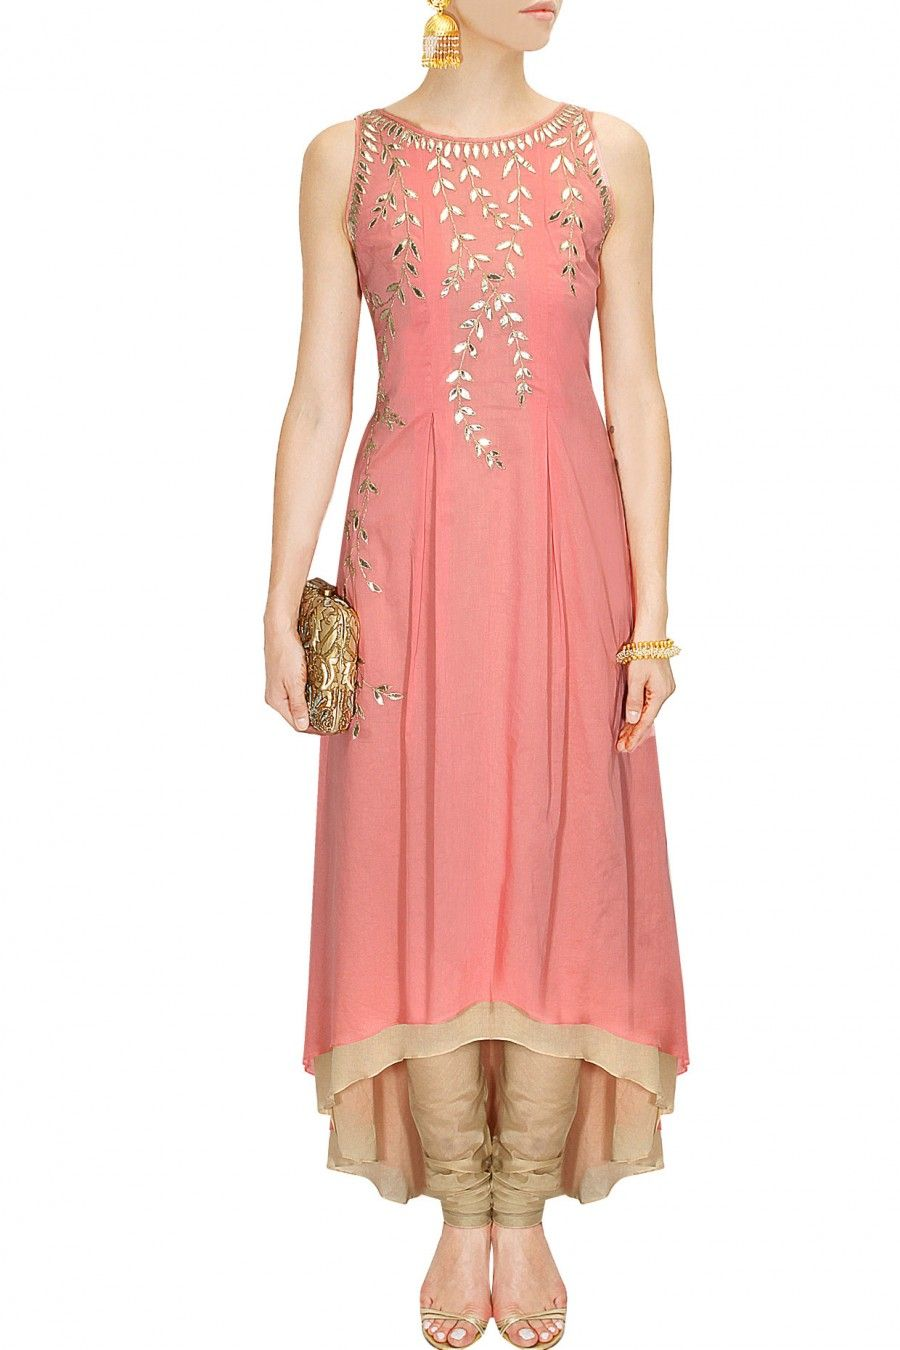 Pink gota patti embroidered kurta available only at Pernia\'s Pop-Up ...